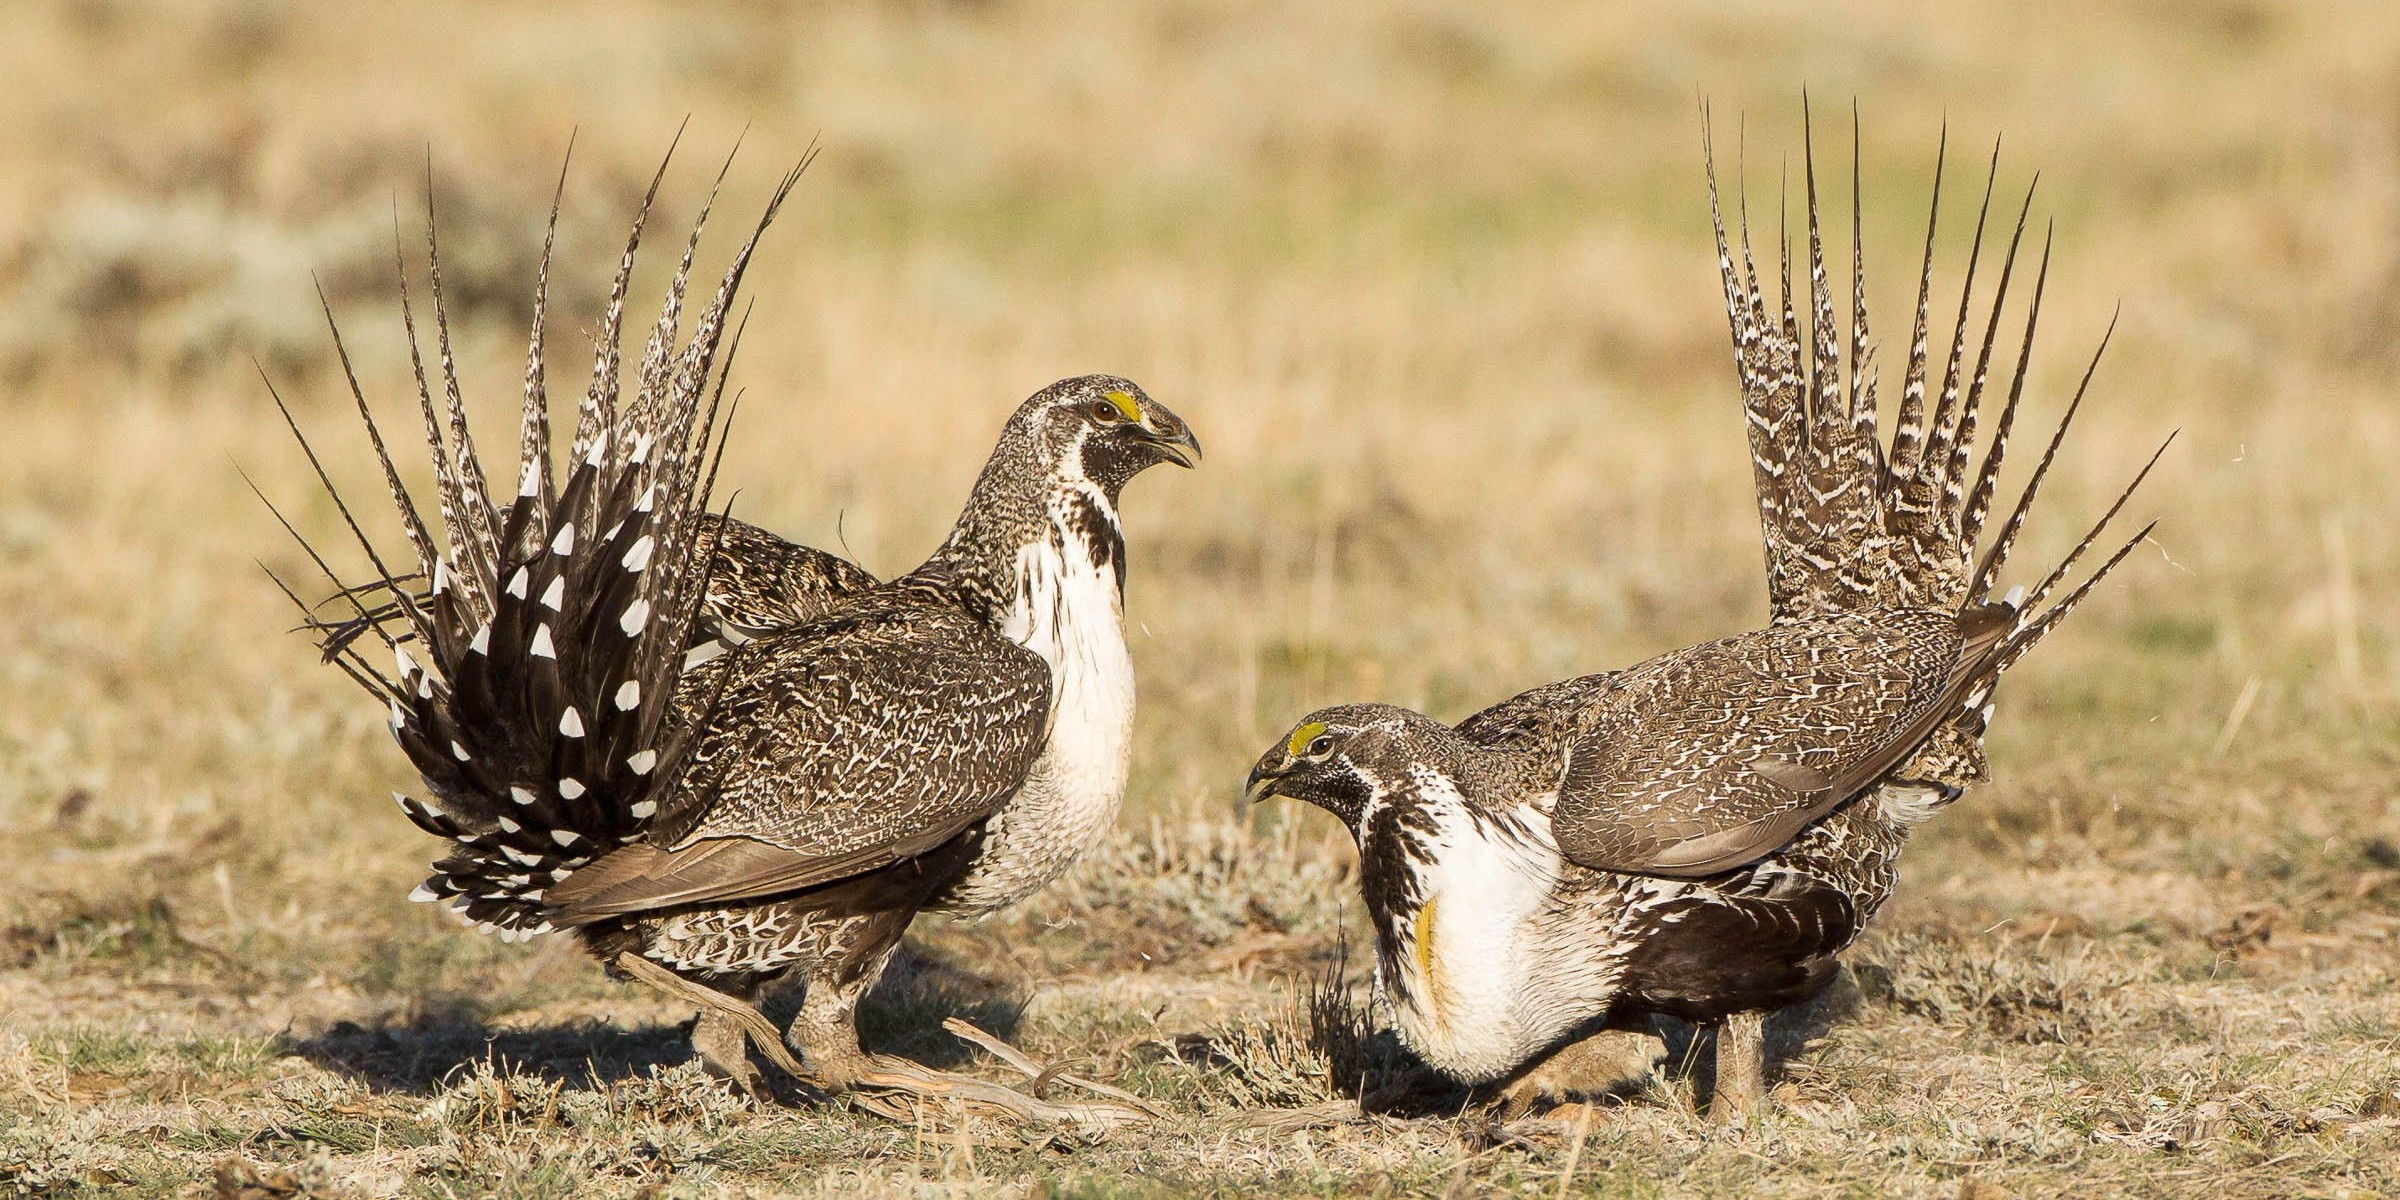 sage grouse 1 jpg?quality=82&strip=all.'